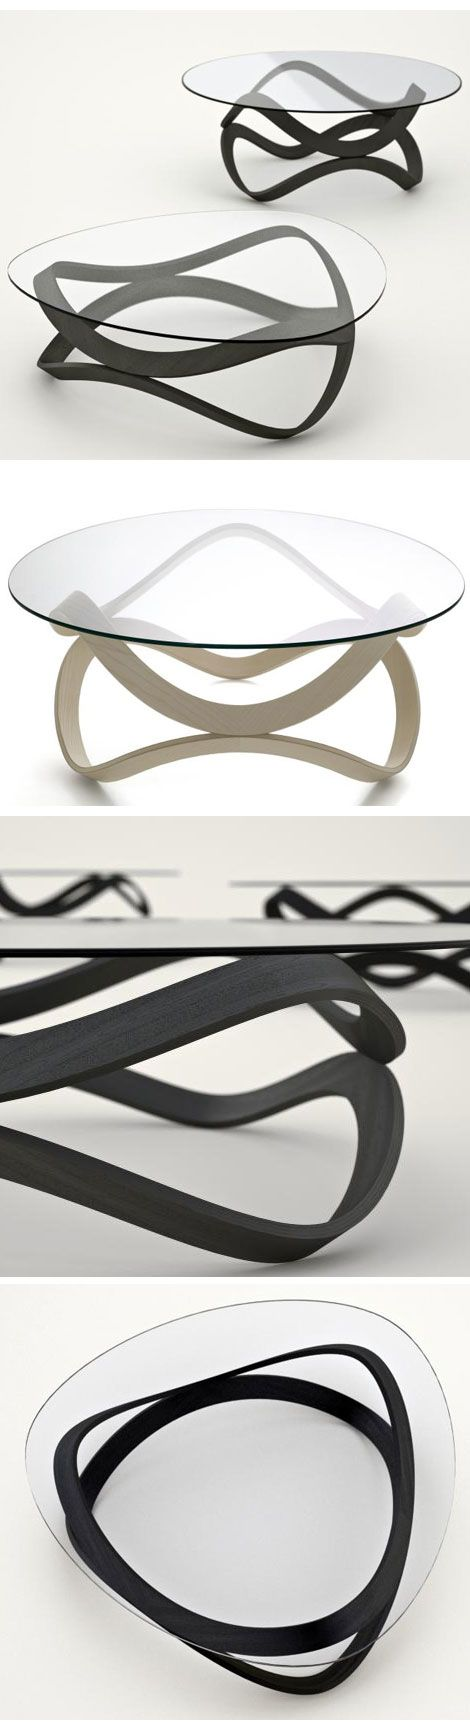 Newton Coffee Table by Dan Sunaga and Staffan Holm: Made of bent ...